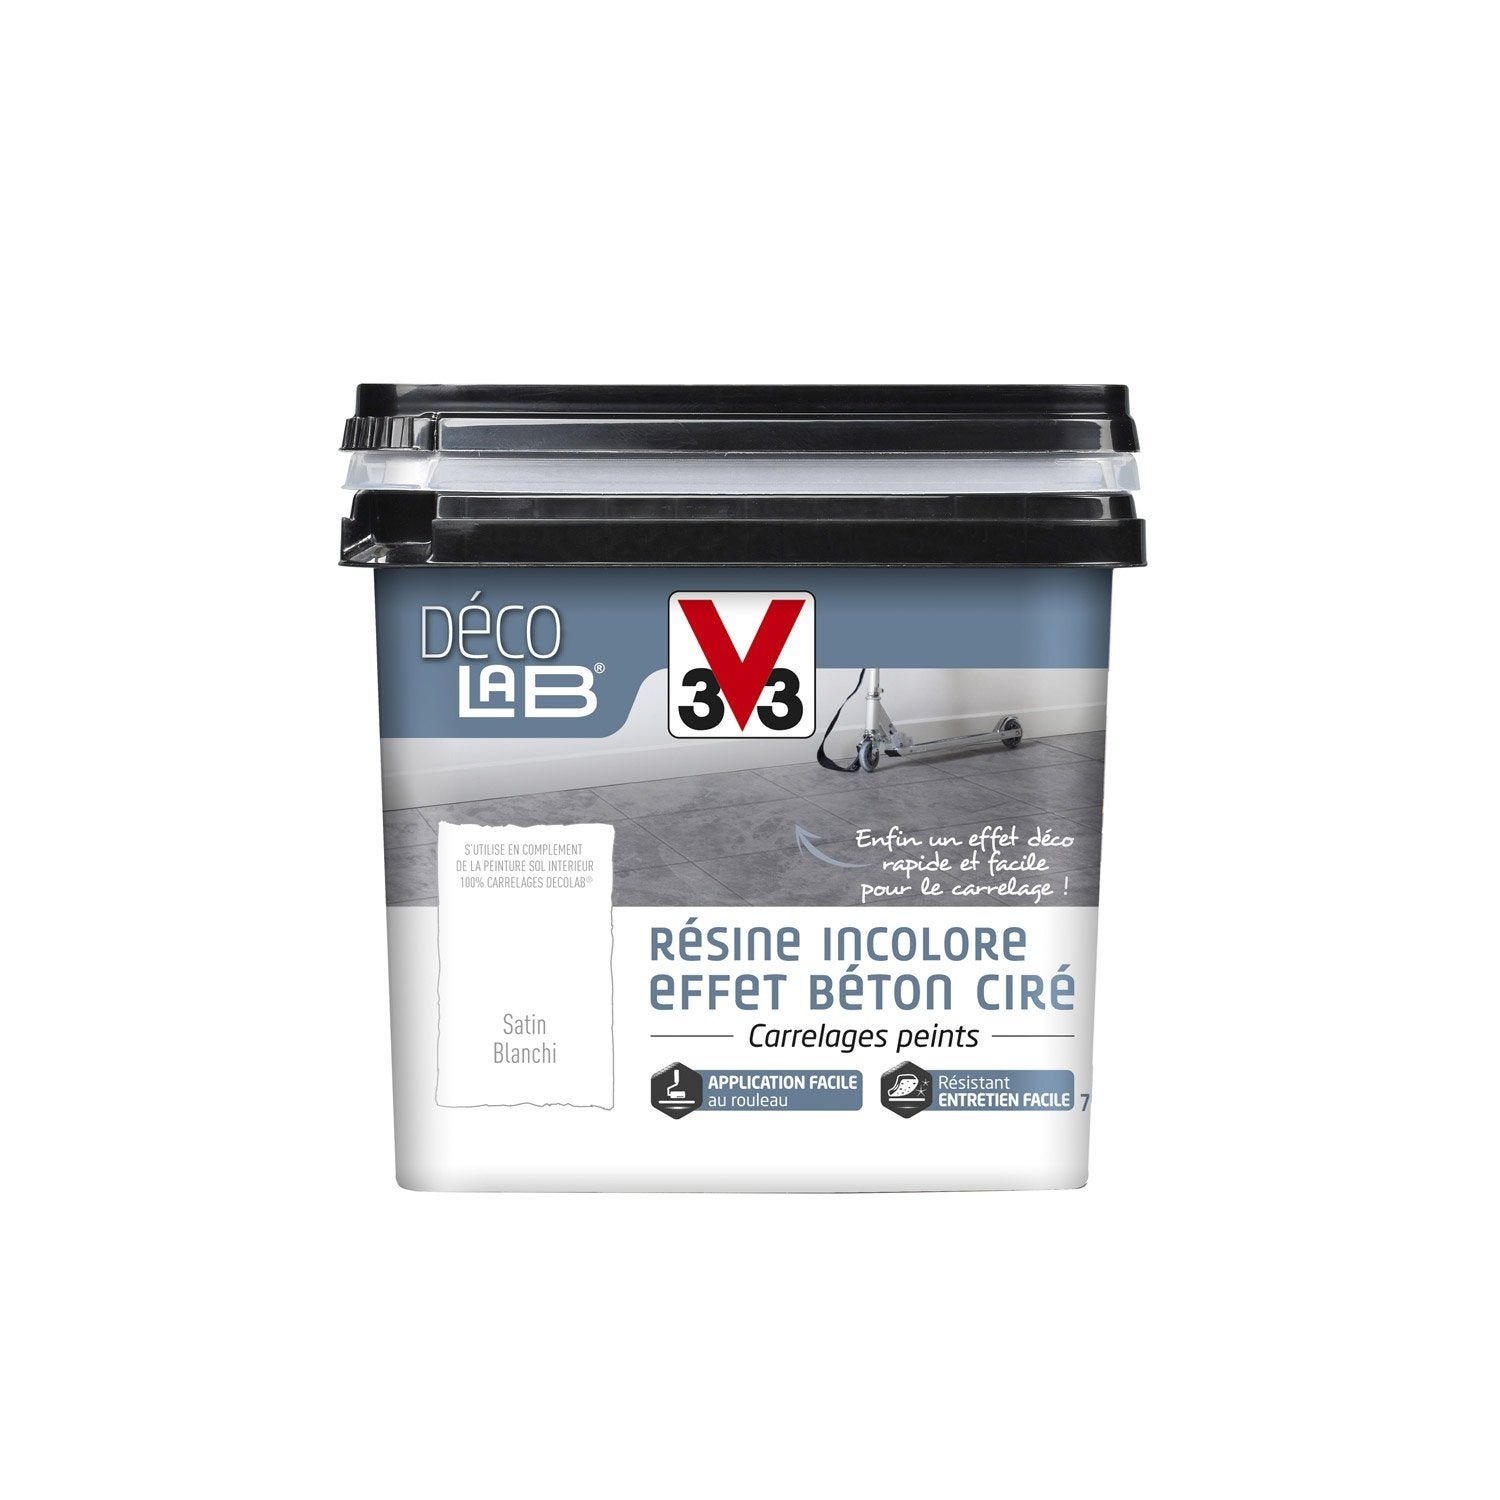 Peinture sol int rieur decolab r sine de finition v33 - Kit renovation escalier leroy merlin ...